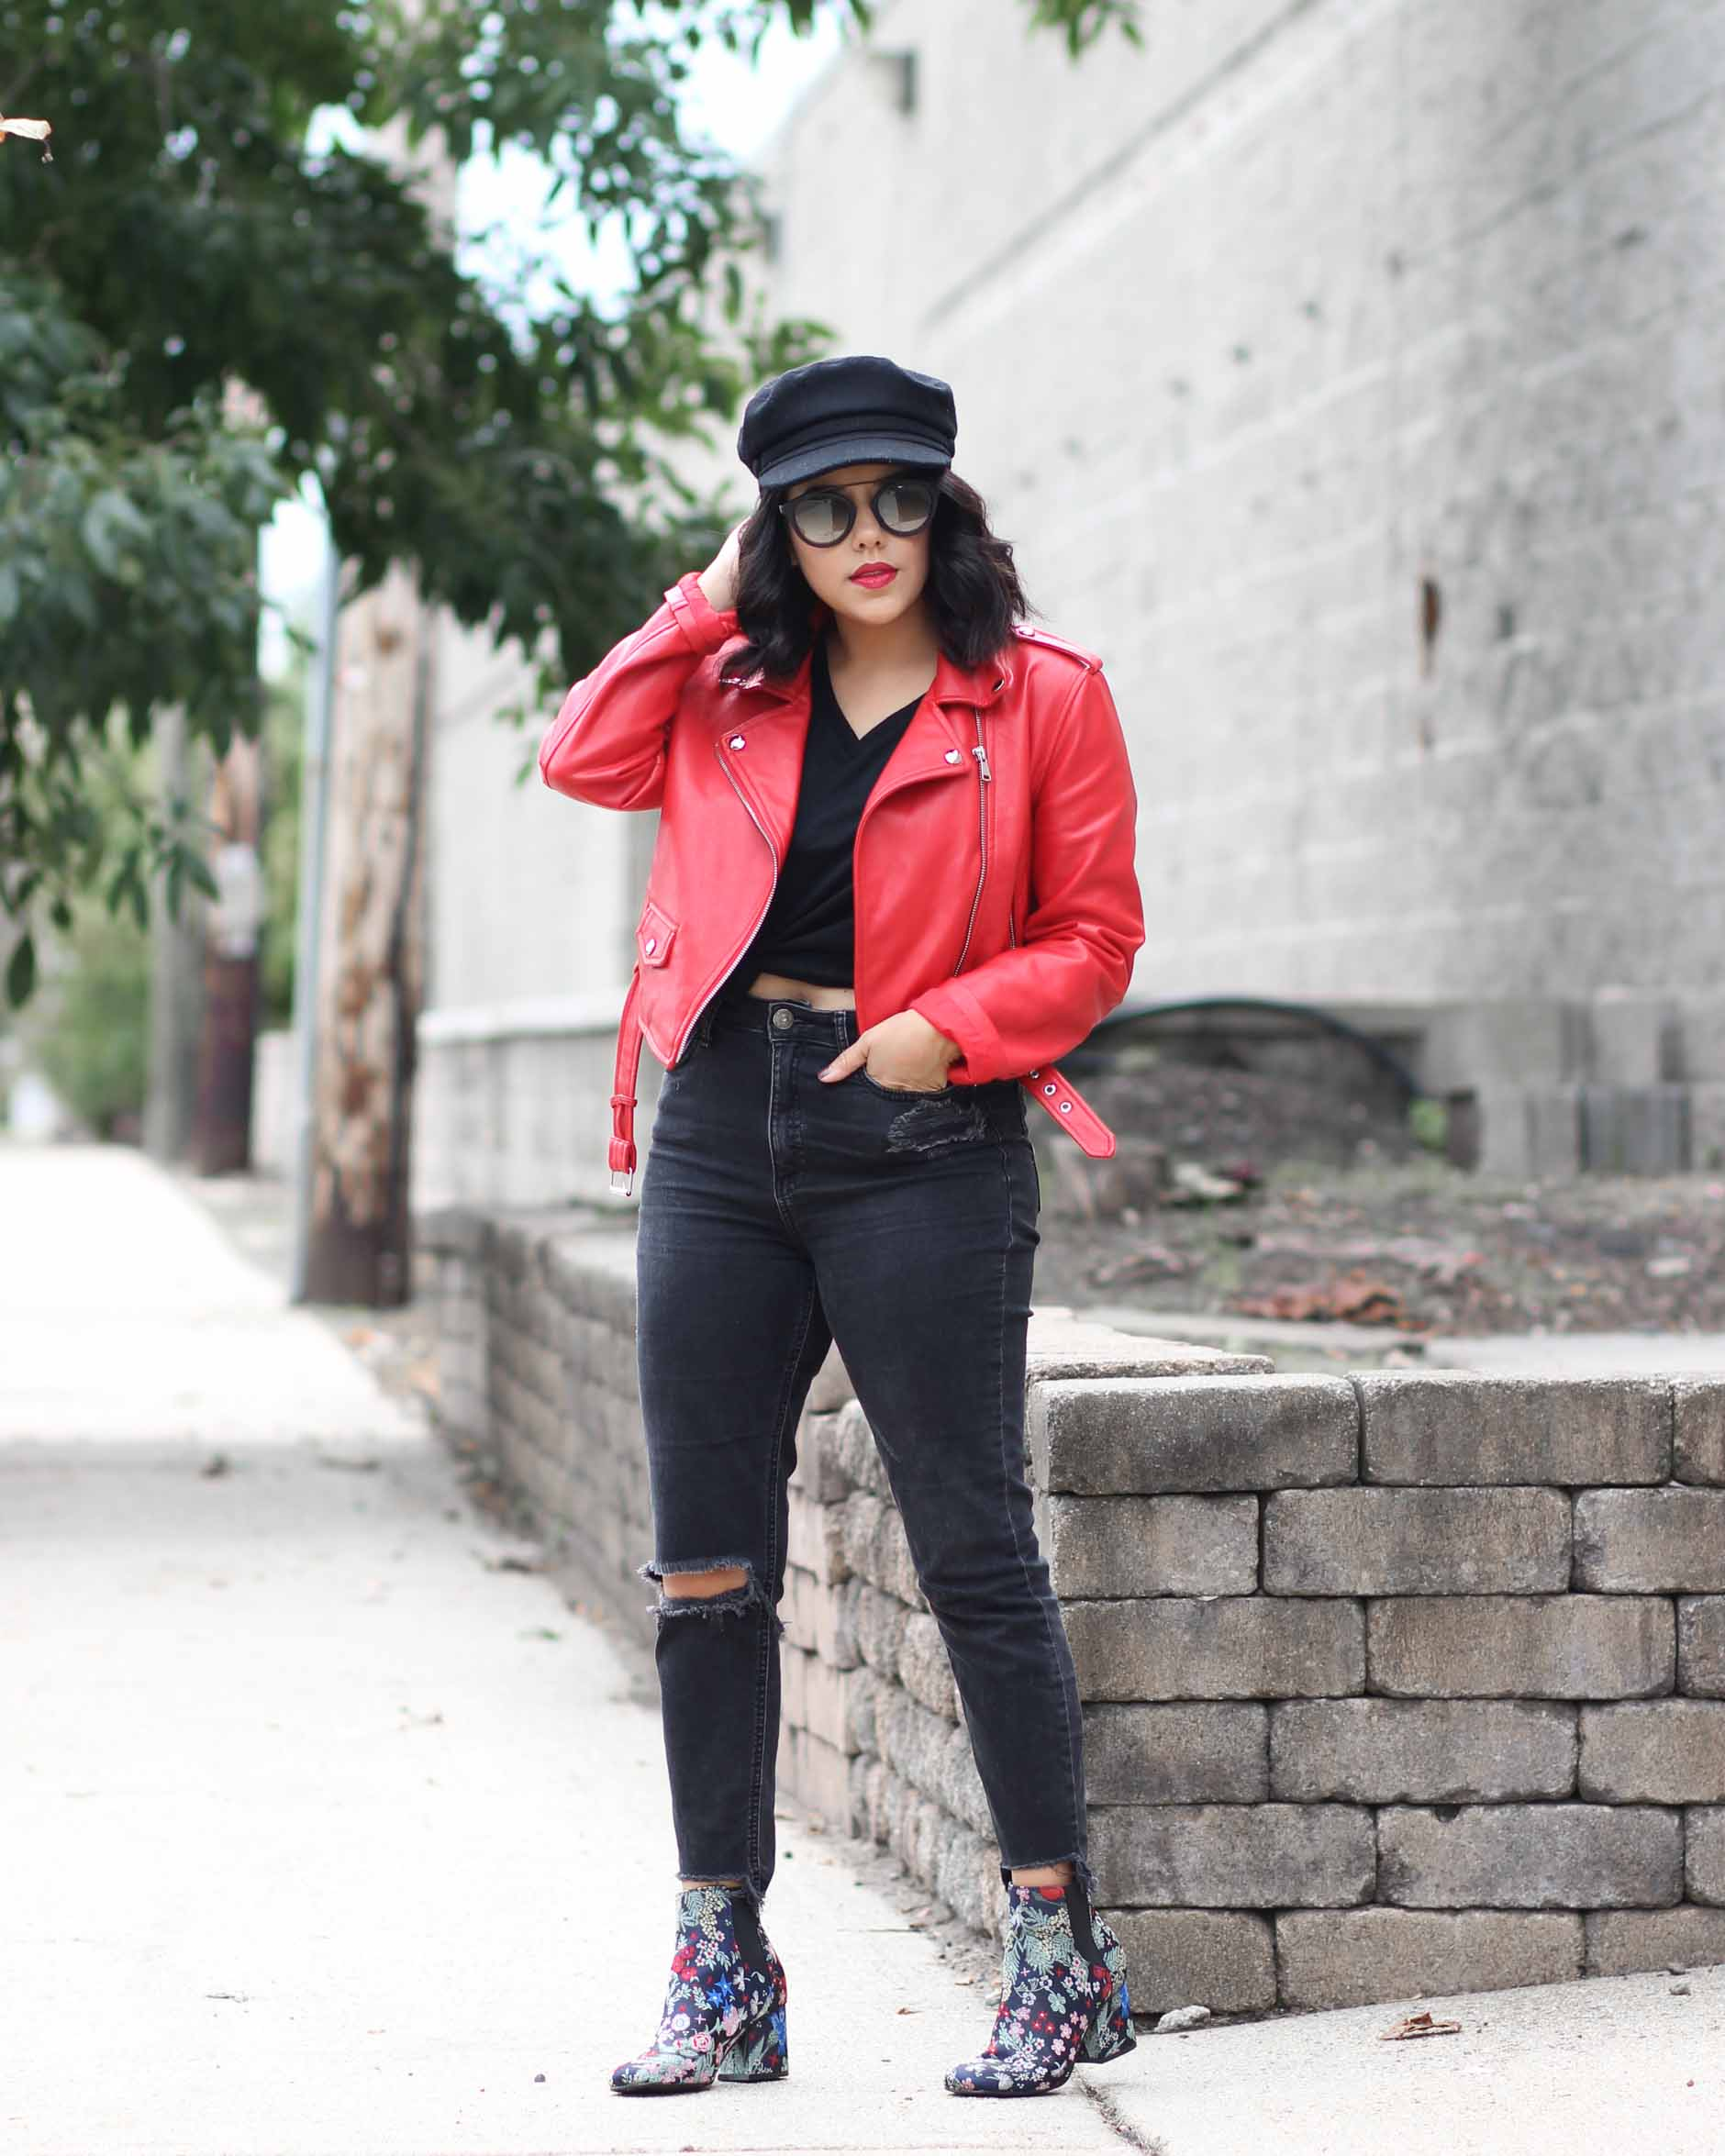 lifestyle blogger naty michele wearing red leather jacket and floral booties